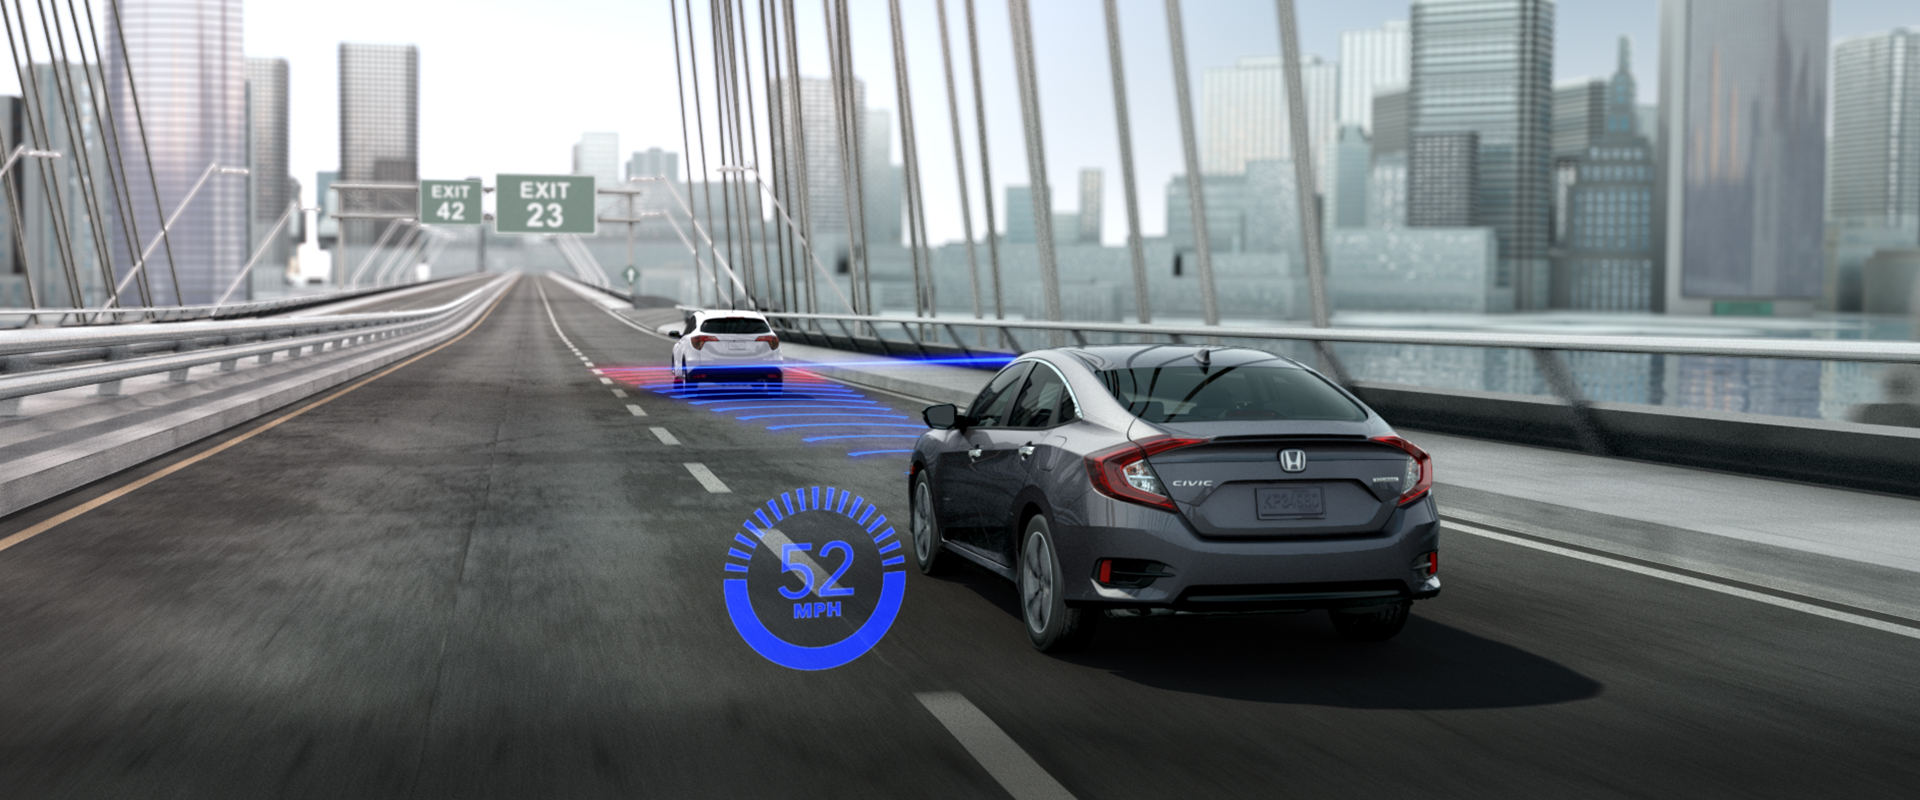 Honda Civic Adaptive Cruise Control